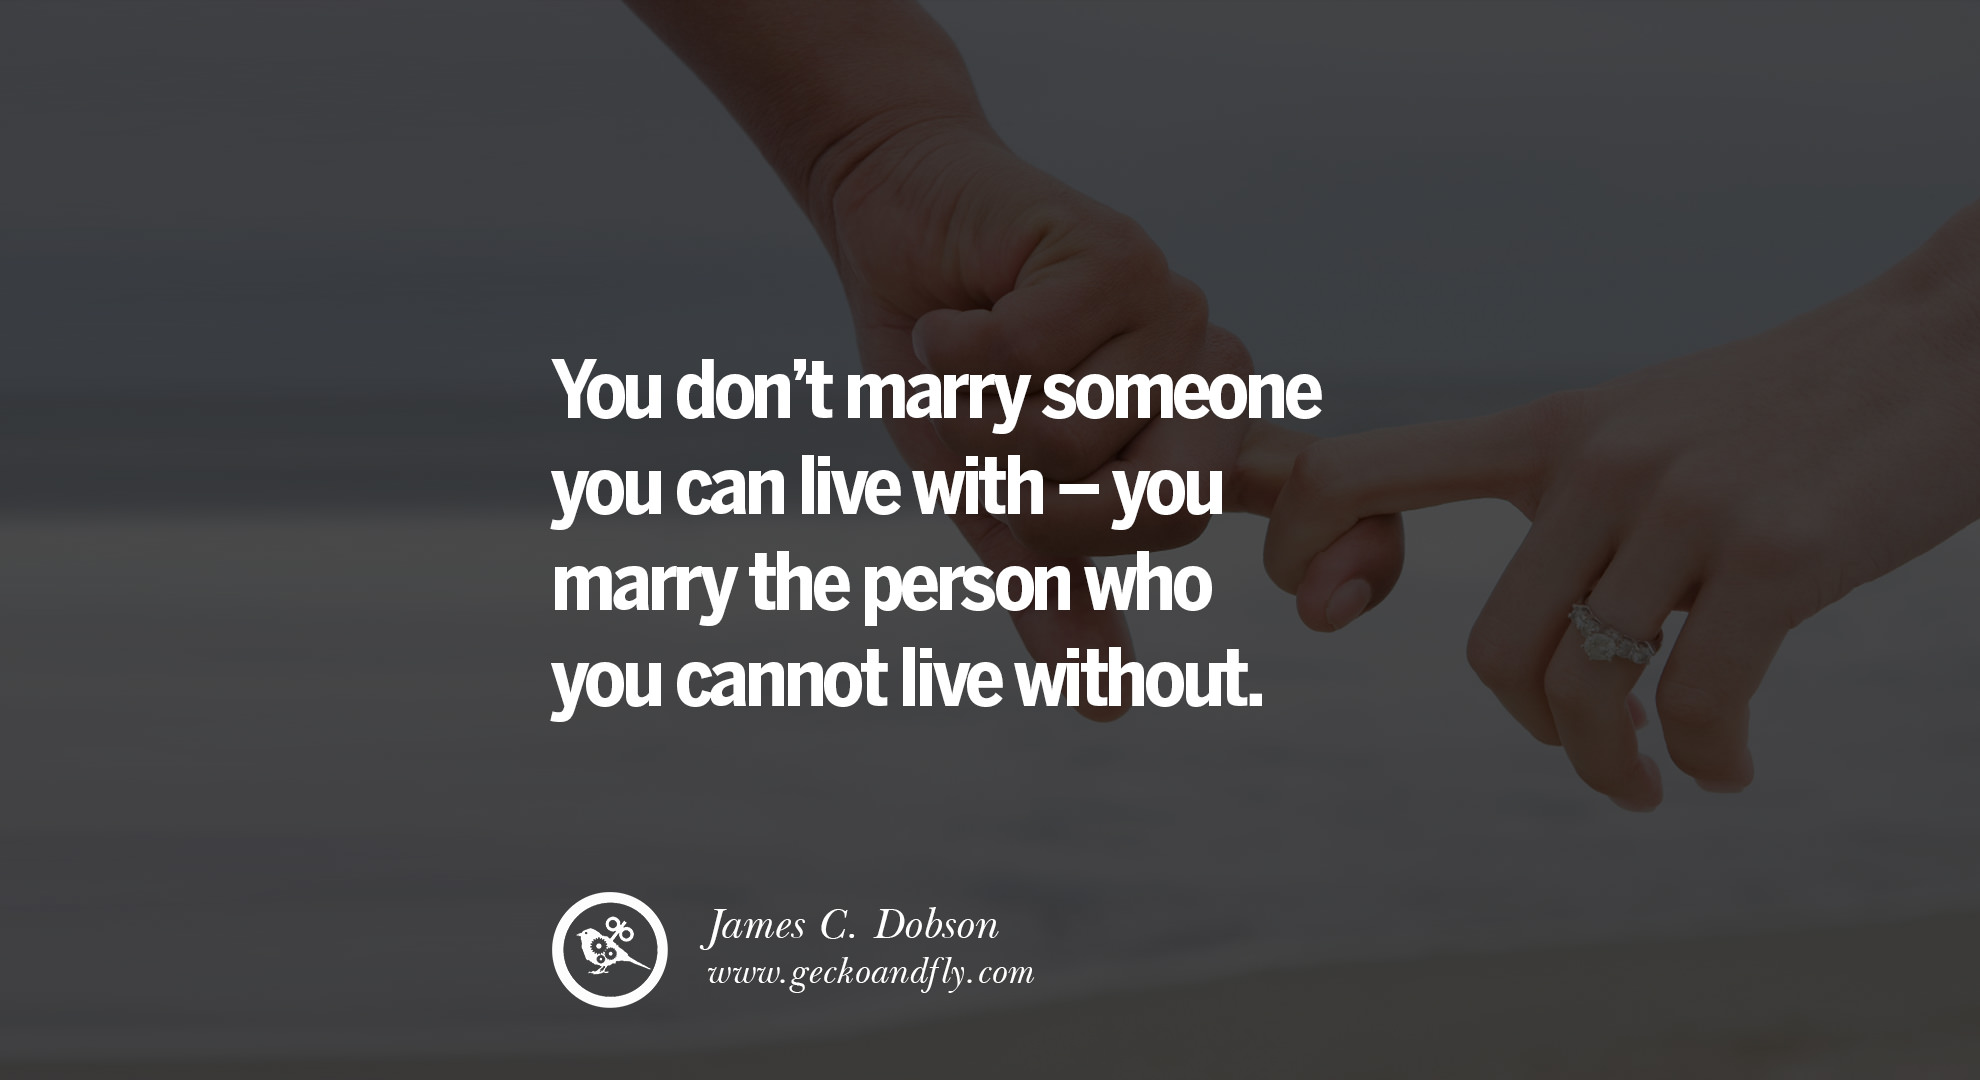 Love Marriage Quotes Inspiration 40 Romantic Quotes About Love Life Marriage And Relationships